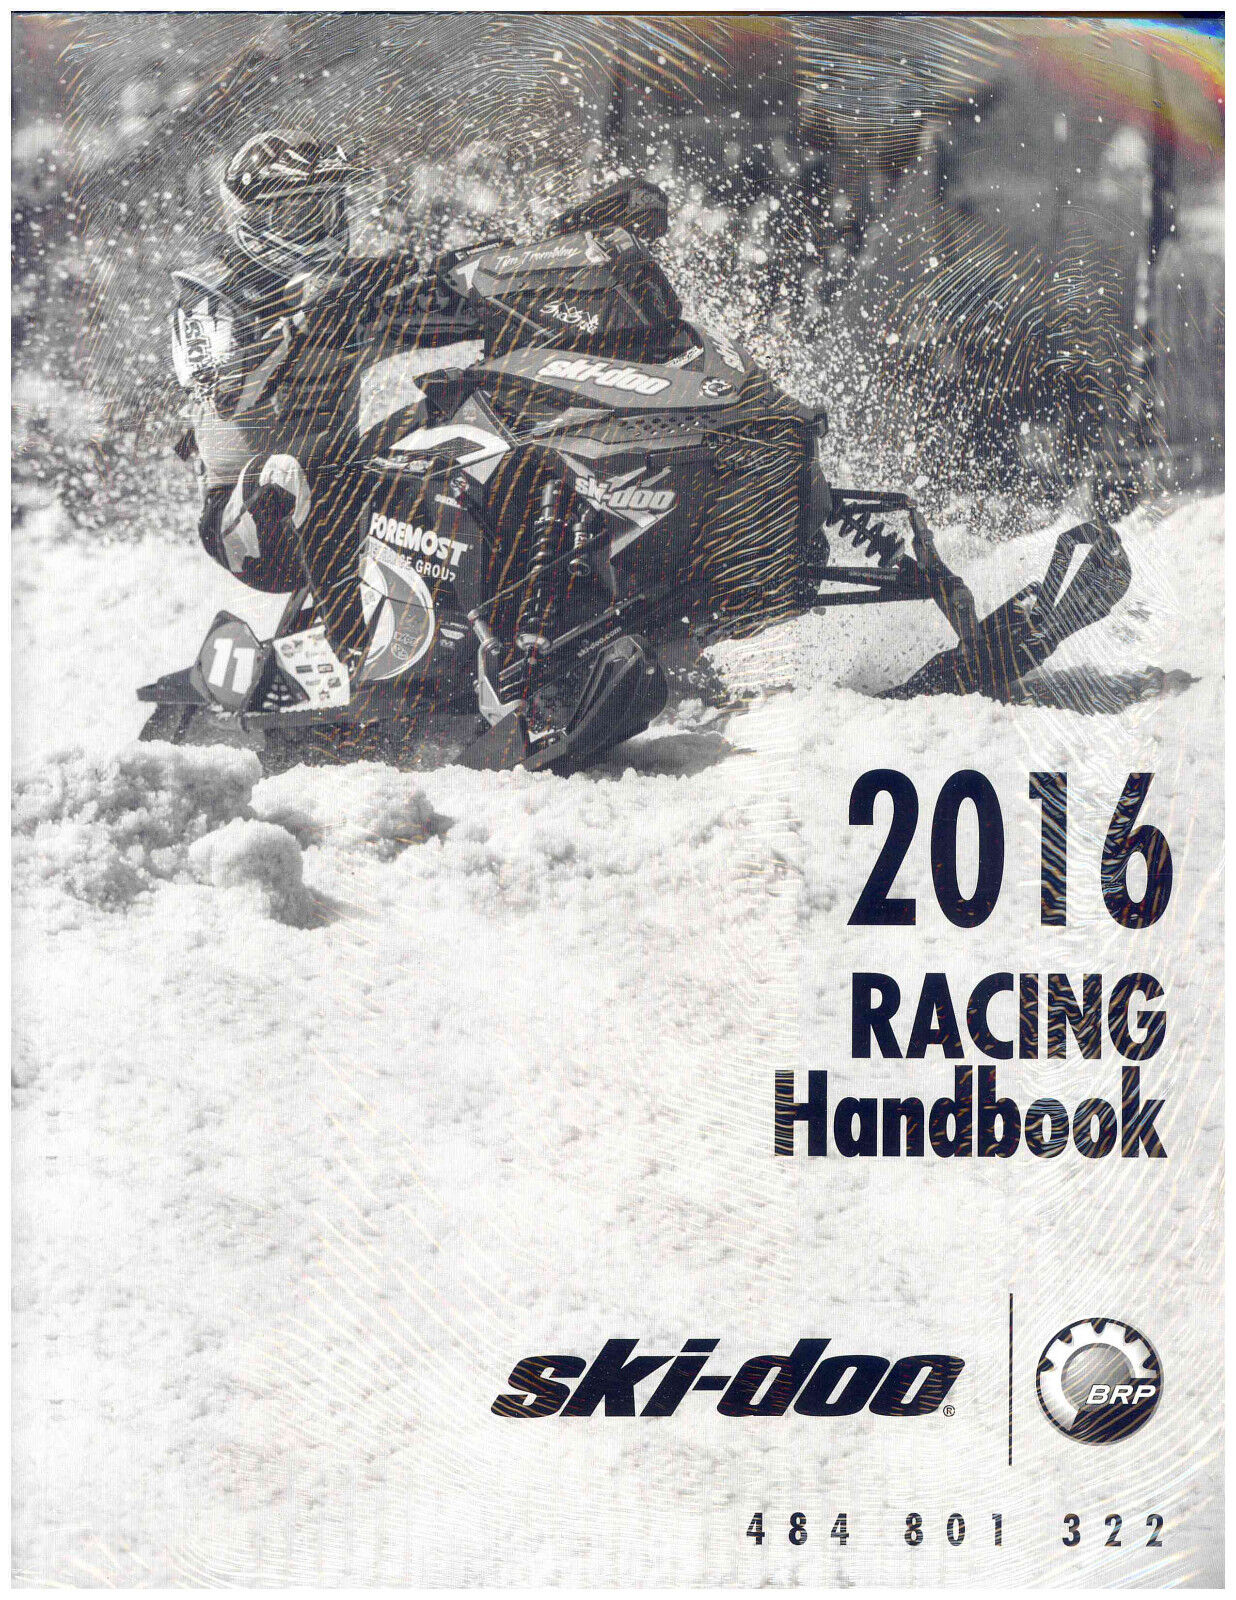 2016  SKI-DOO RACING HANDBOOK 484801322  there are more brands of high-quality goods